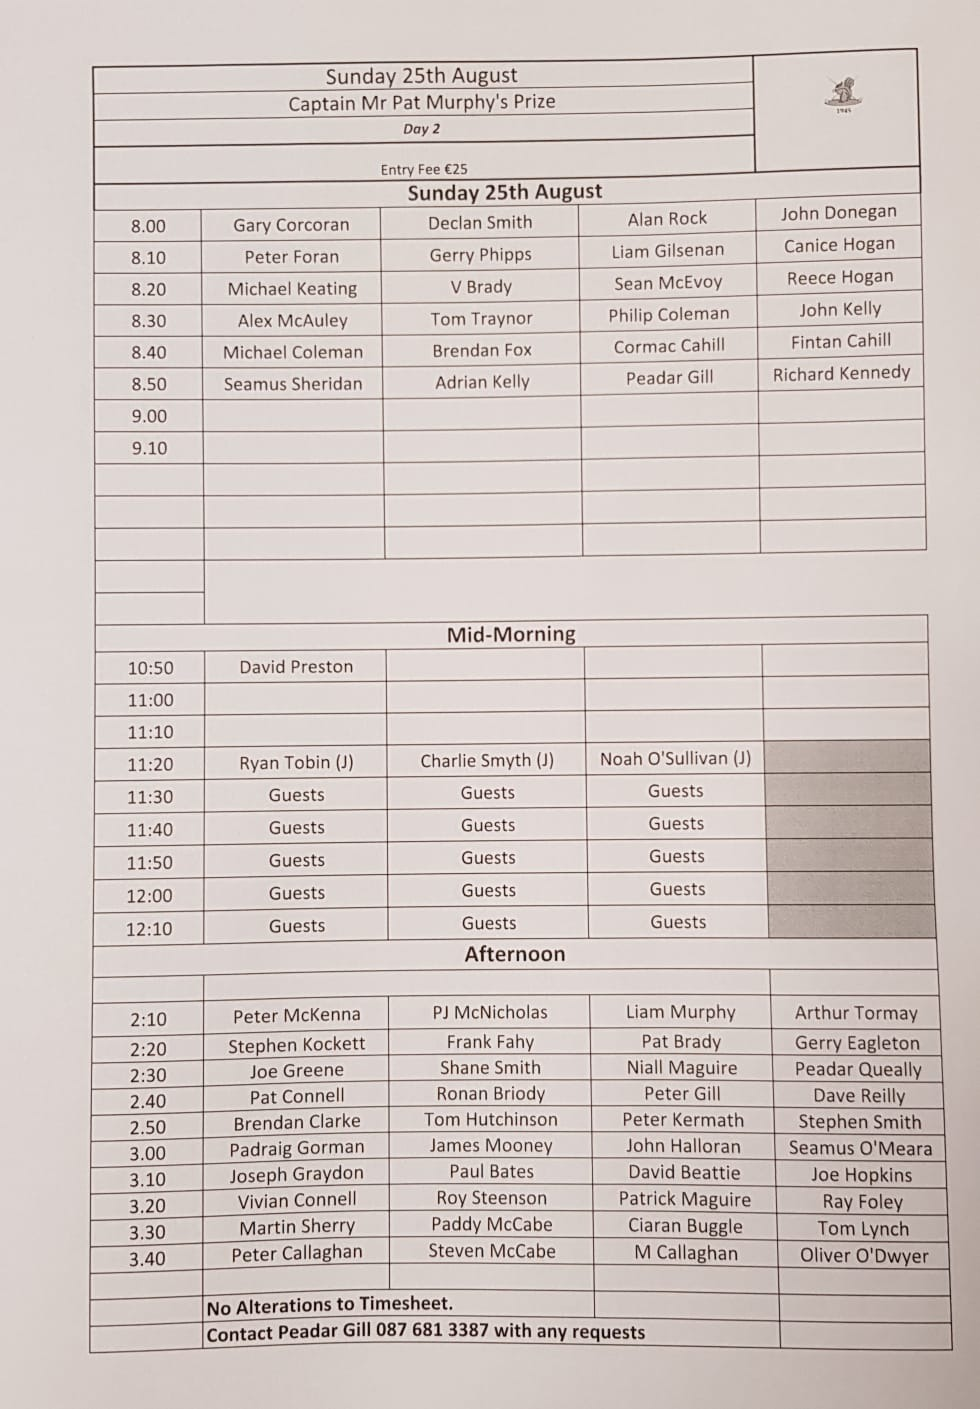 Captains Prize Day 2 Timesheet 2019.png